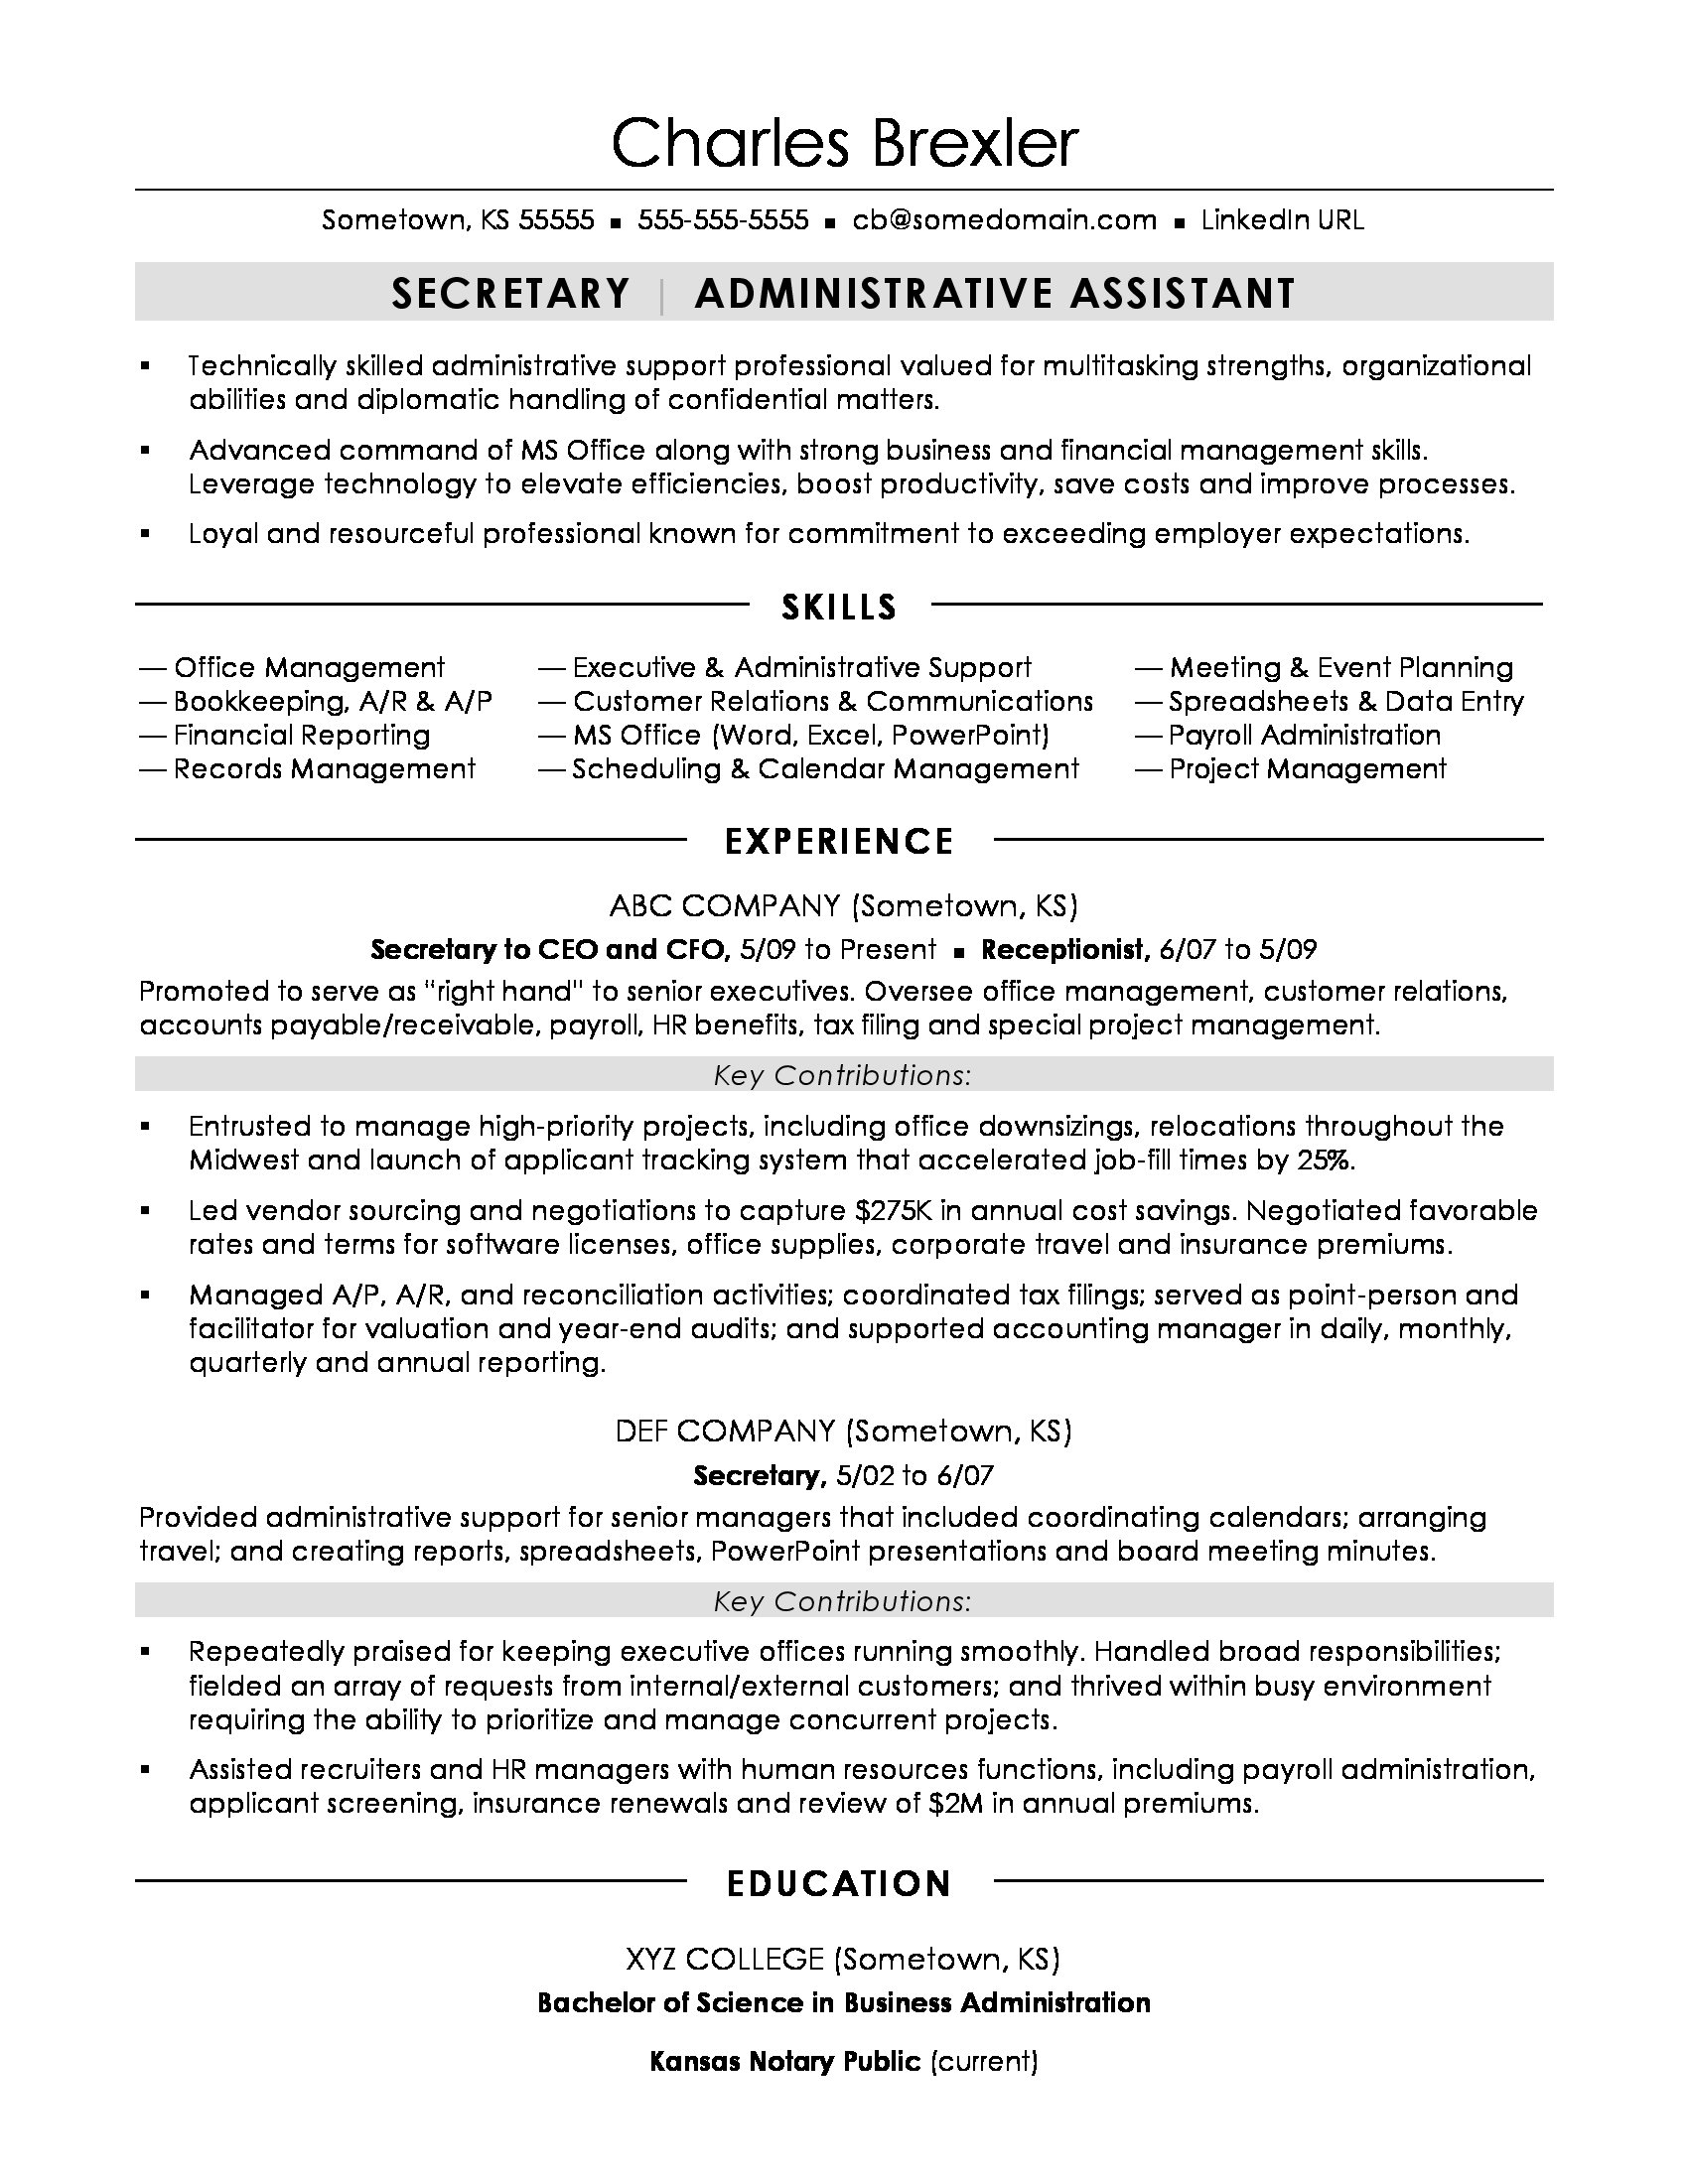 secretary resume sample monster skills hotel and restaurant management registered nurse Resume Secretary Resume Skills